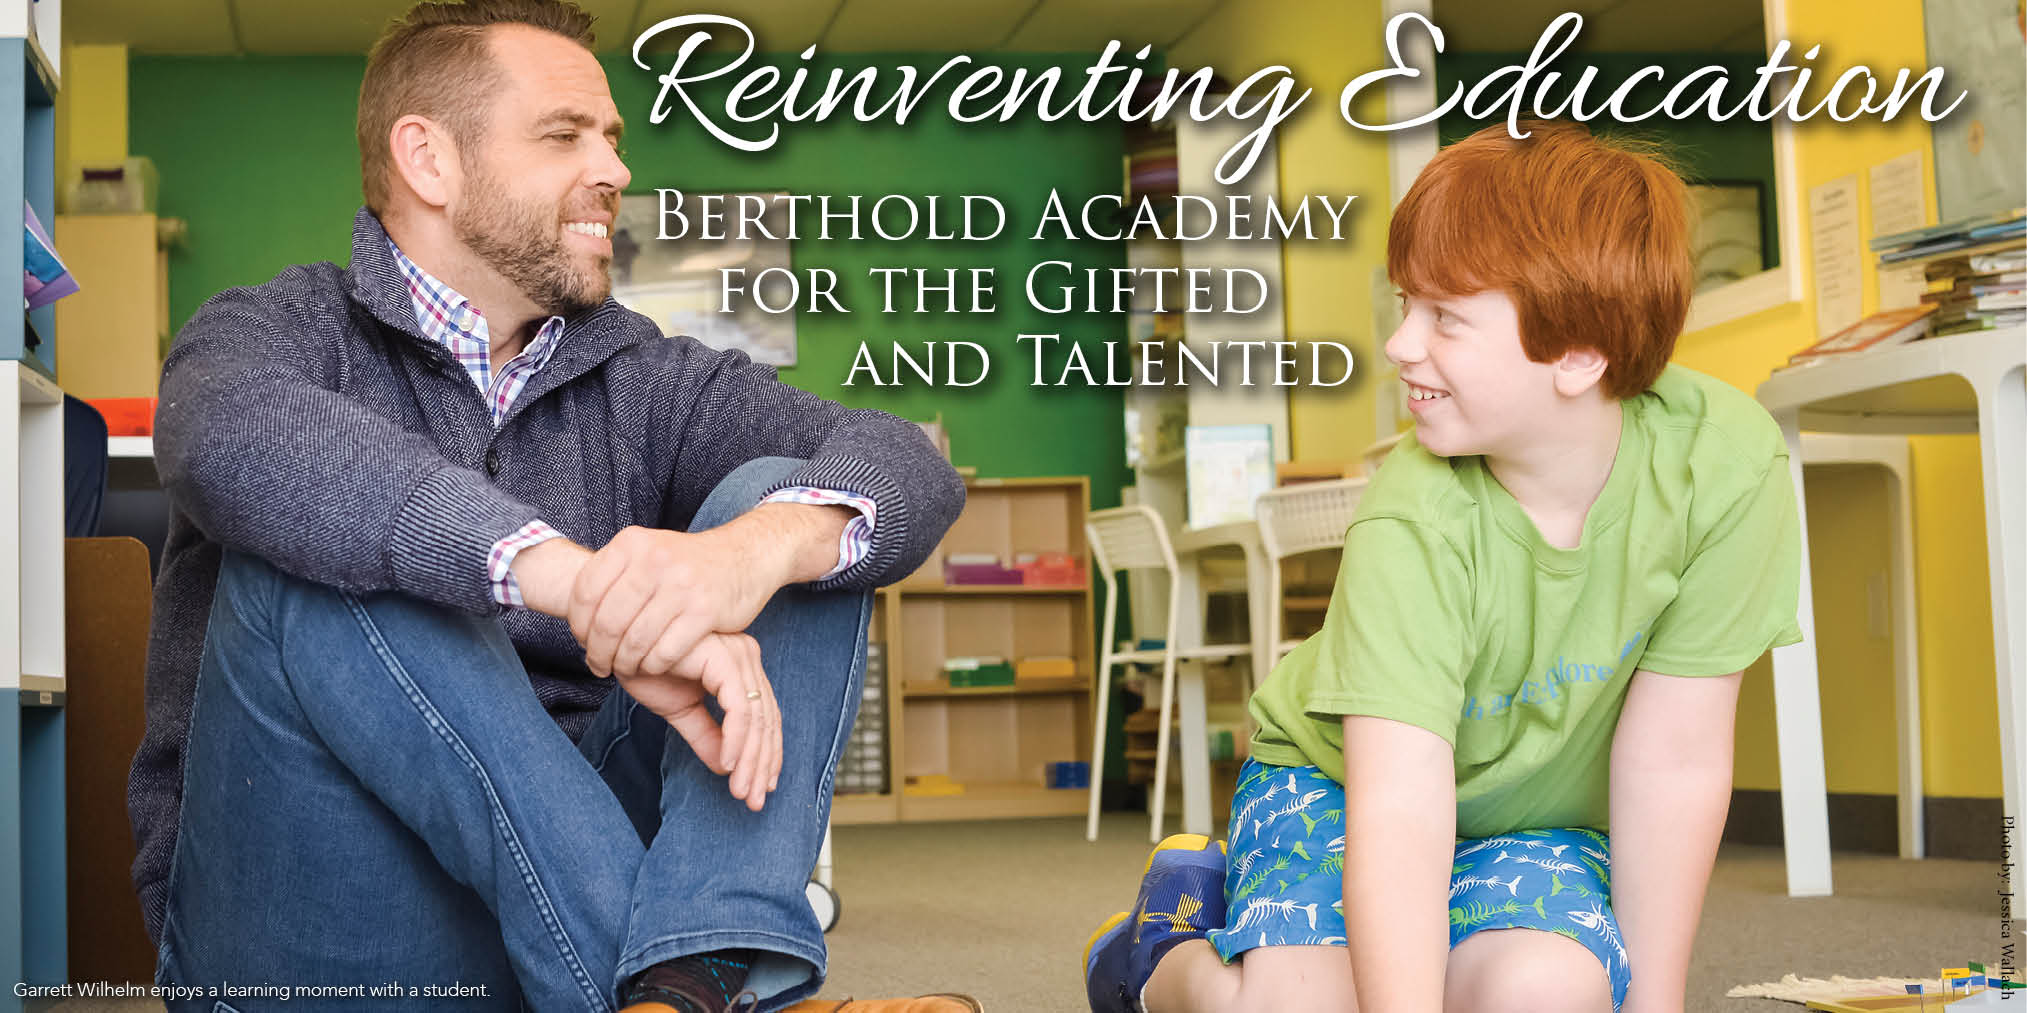 Reinventing Education - Berthold Academy for the Gifted and Talented